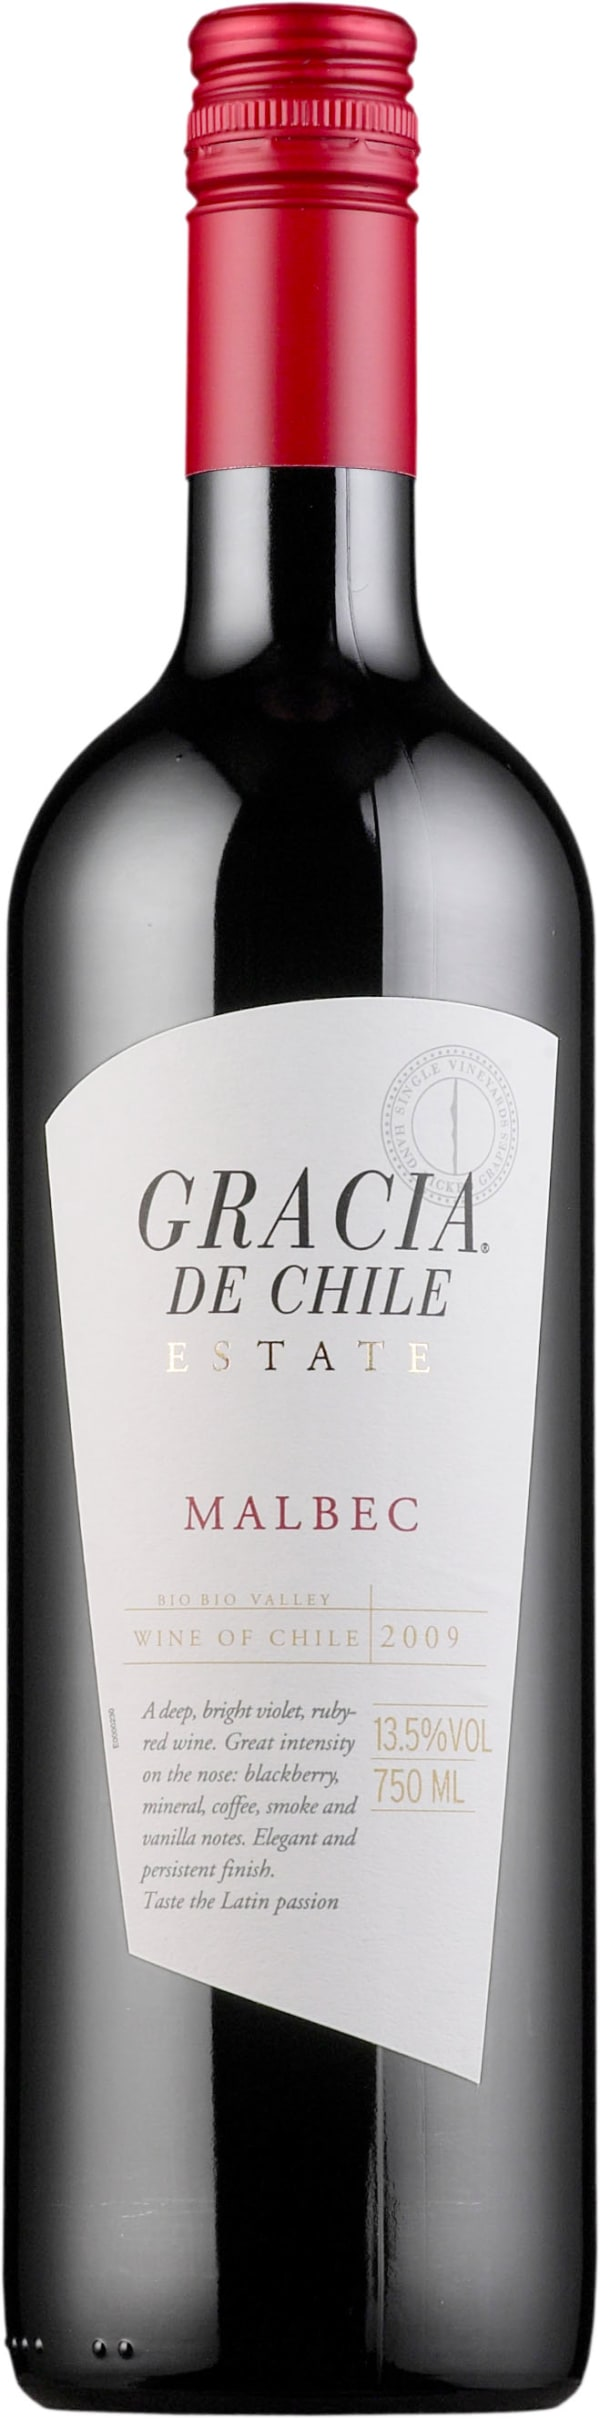 Gracia de Chile Malbec 2016